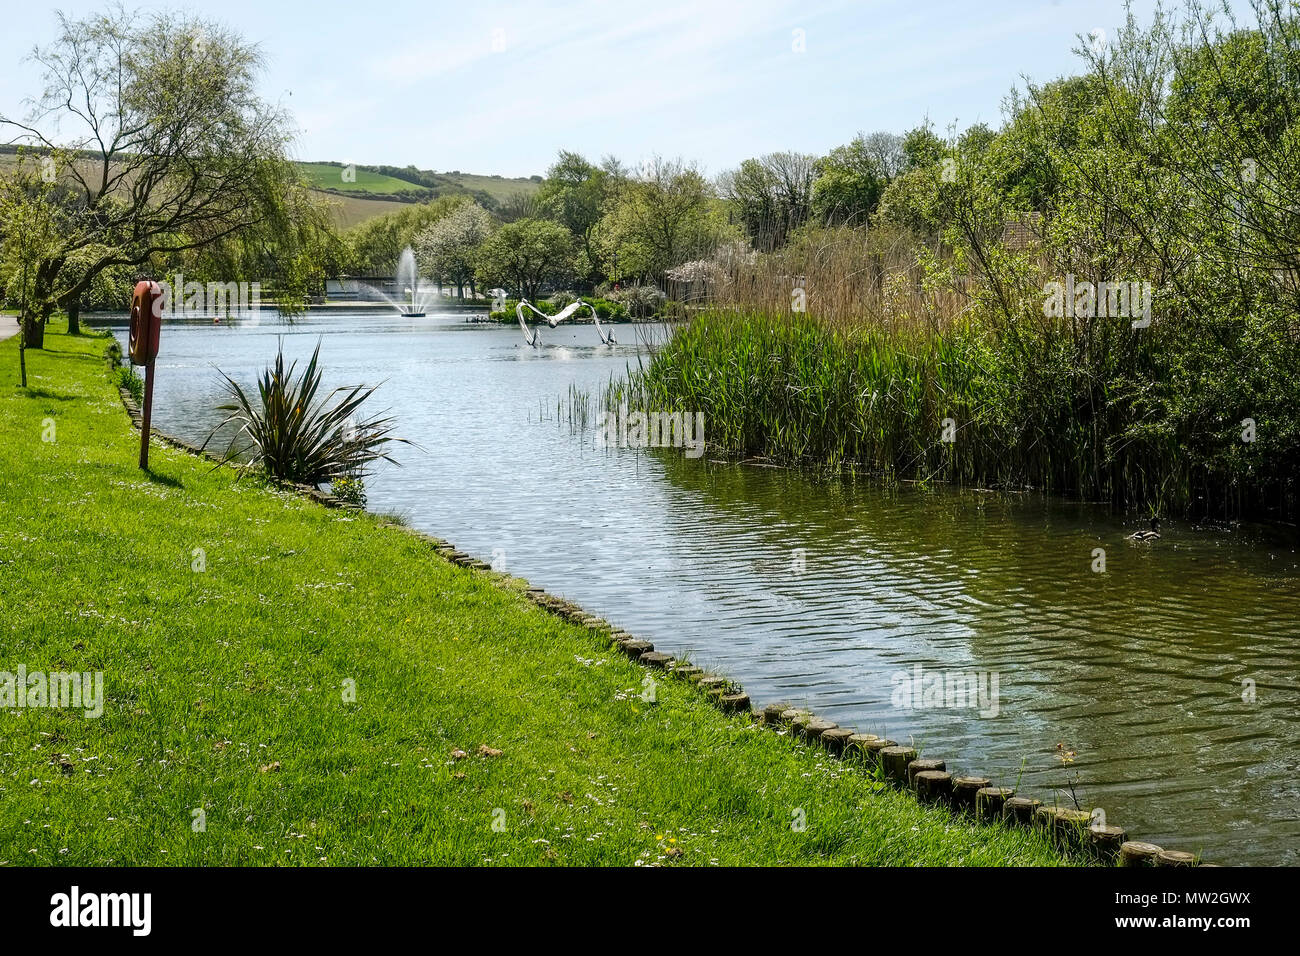 Trenance Boating Lake in Trenance Park in Newquay in Cornwall. - Stock Image